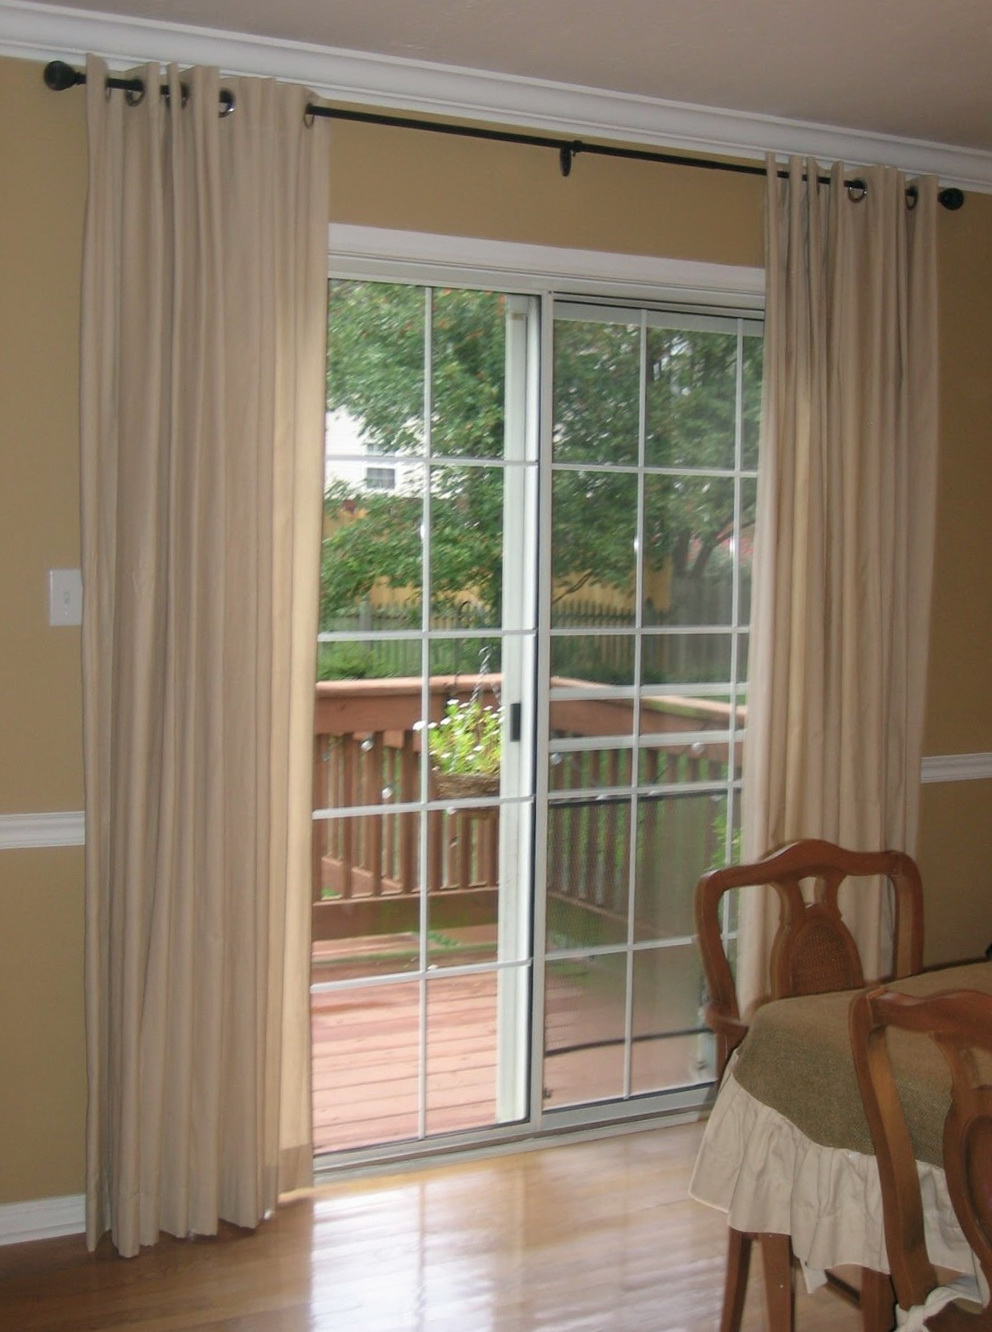 Blinds Or Curtains For Sliding Glass Doors